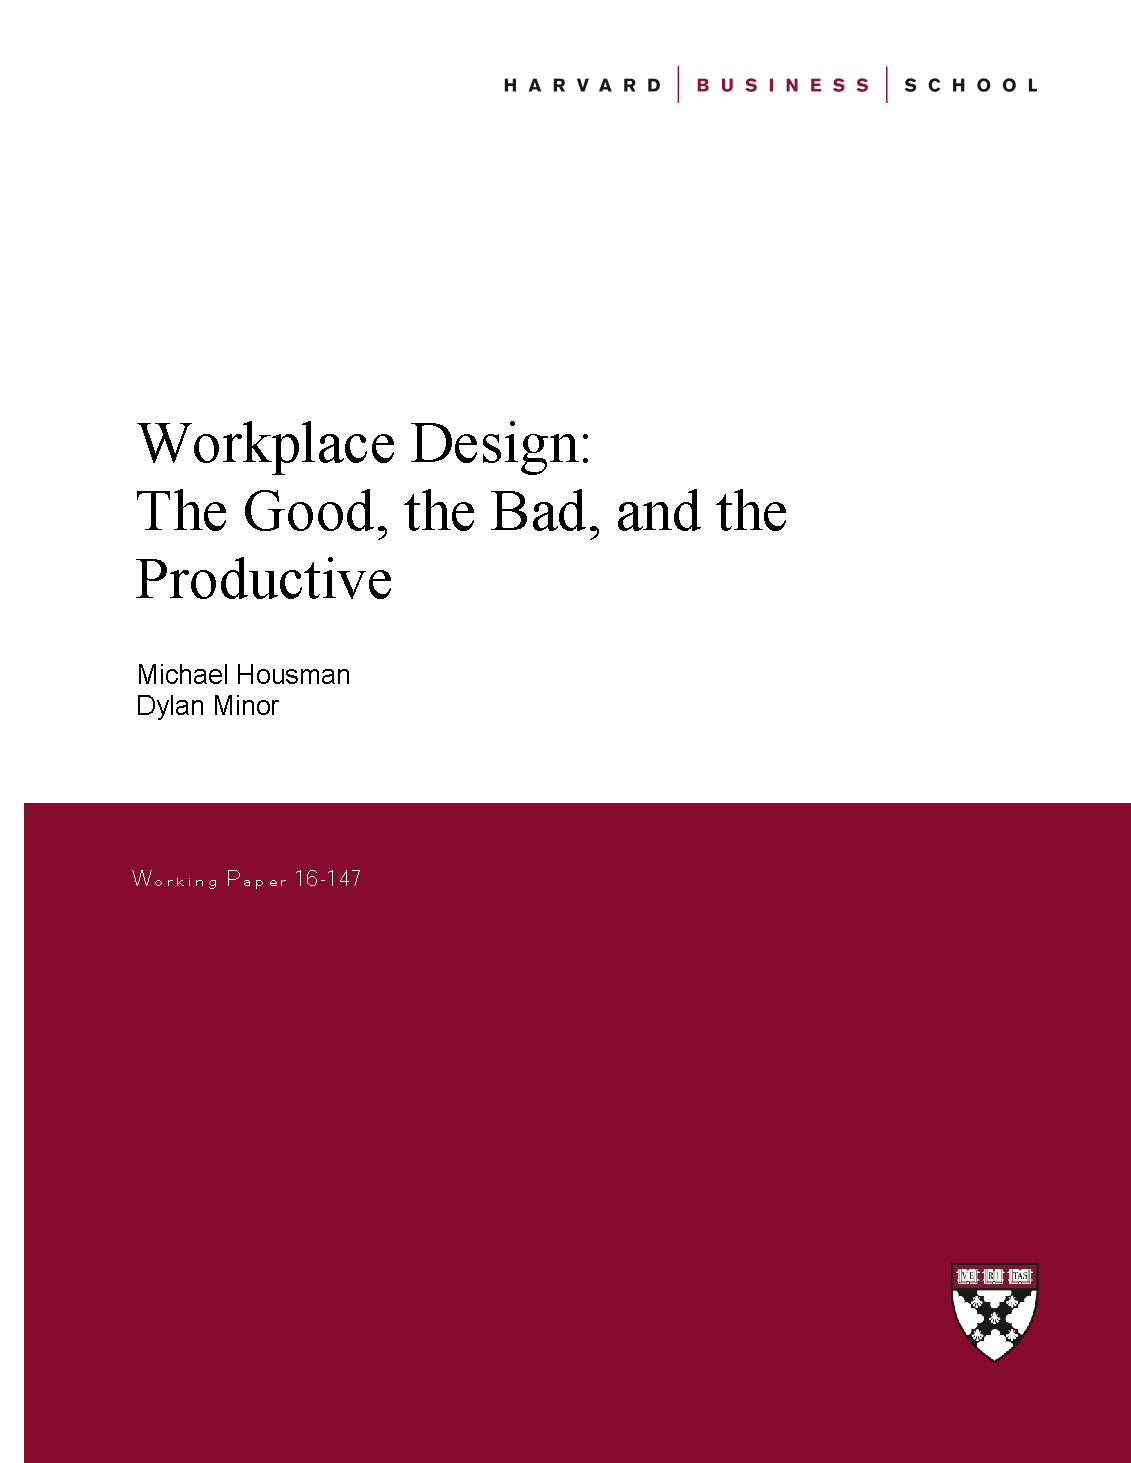 Workplace Design: The Good, the Bad, and the Productive